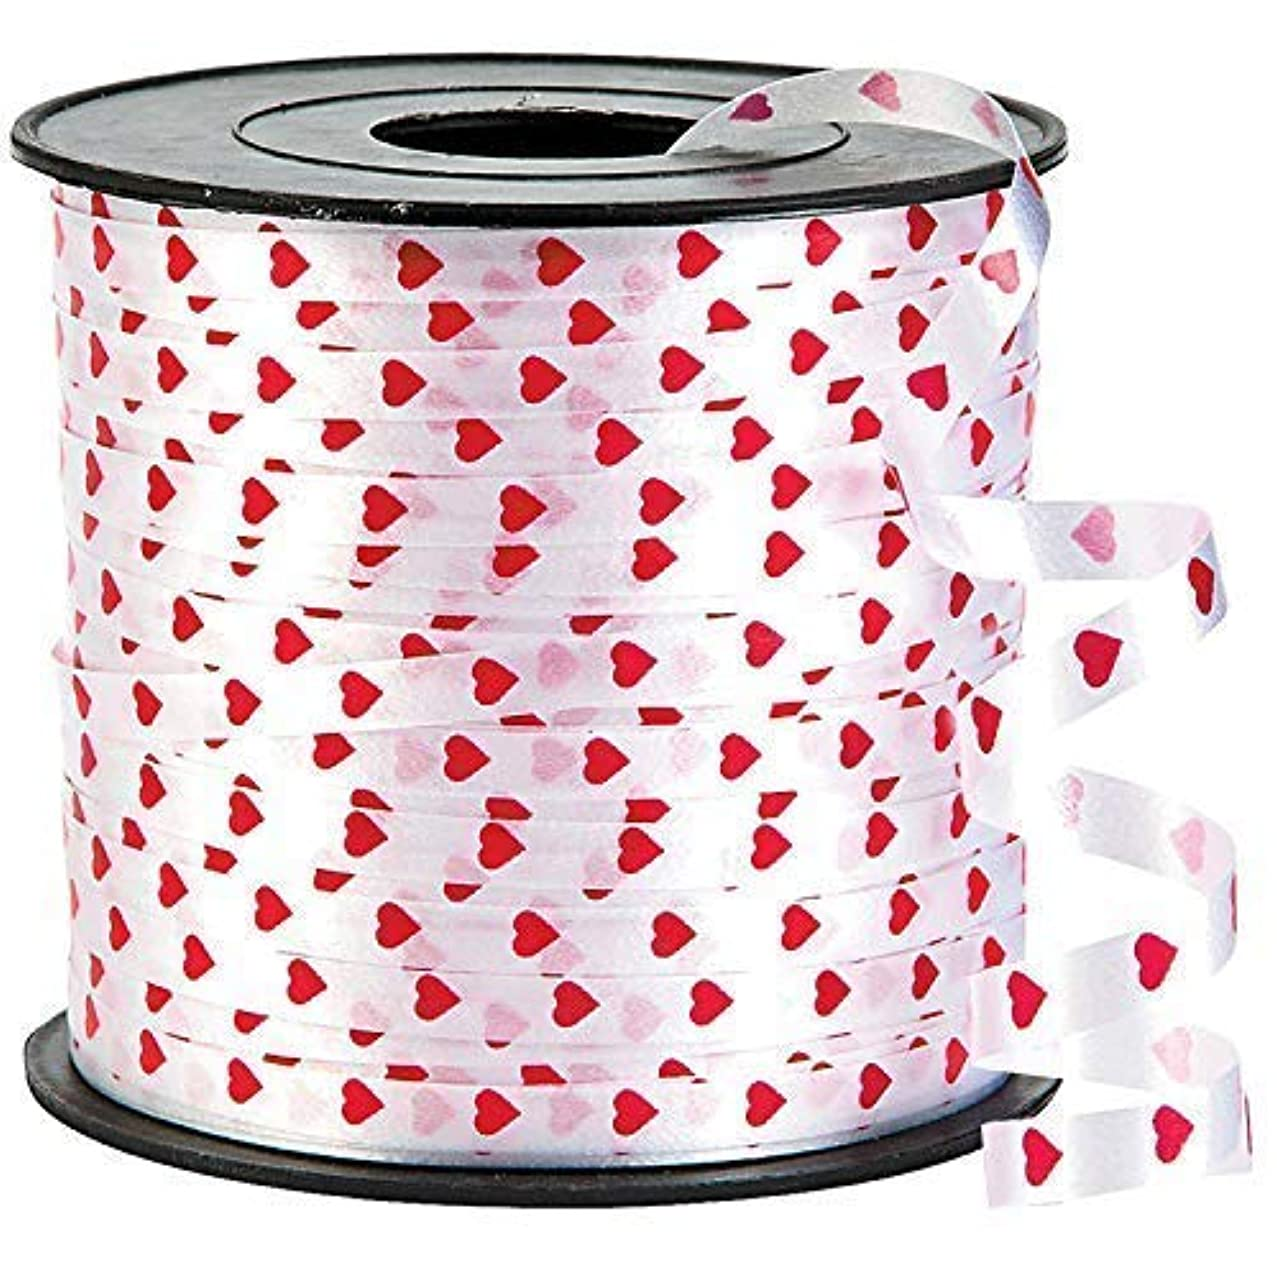 Heart Valentines Curling Gift Ribbon – 100 Yard   Valentines Day Decorations for Home, Outdoor, Office, Window, Classroom   Perfect for Balloons, Gift Wrap, Birthday Party Supplies, Crafts DIY